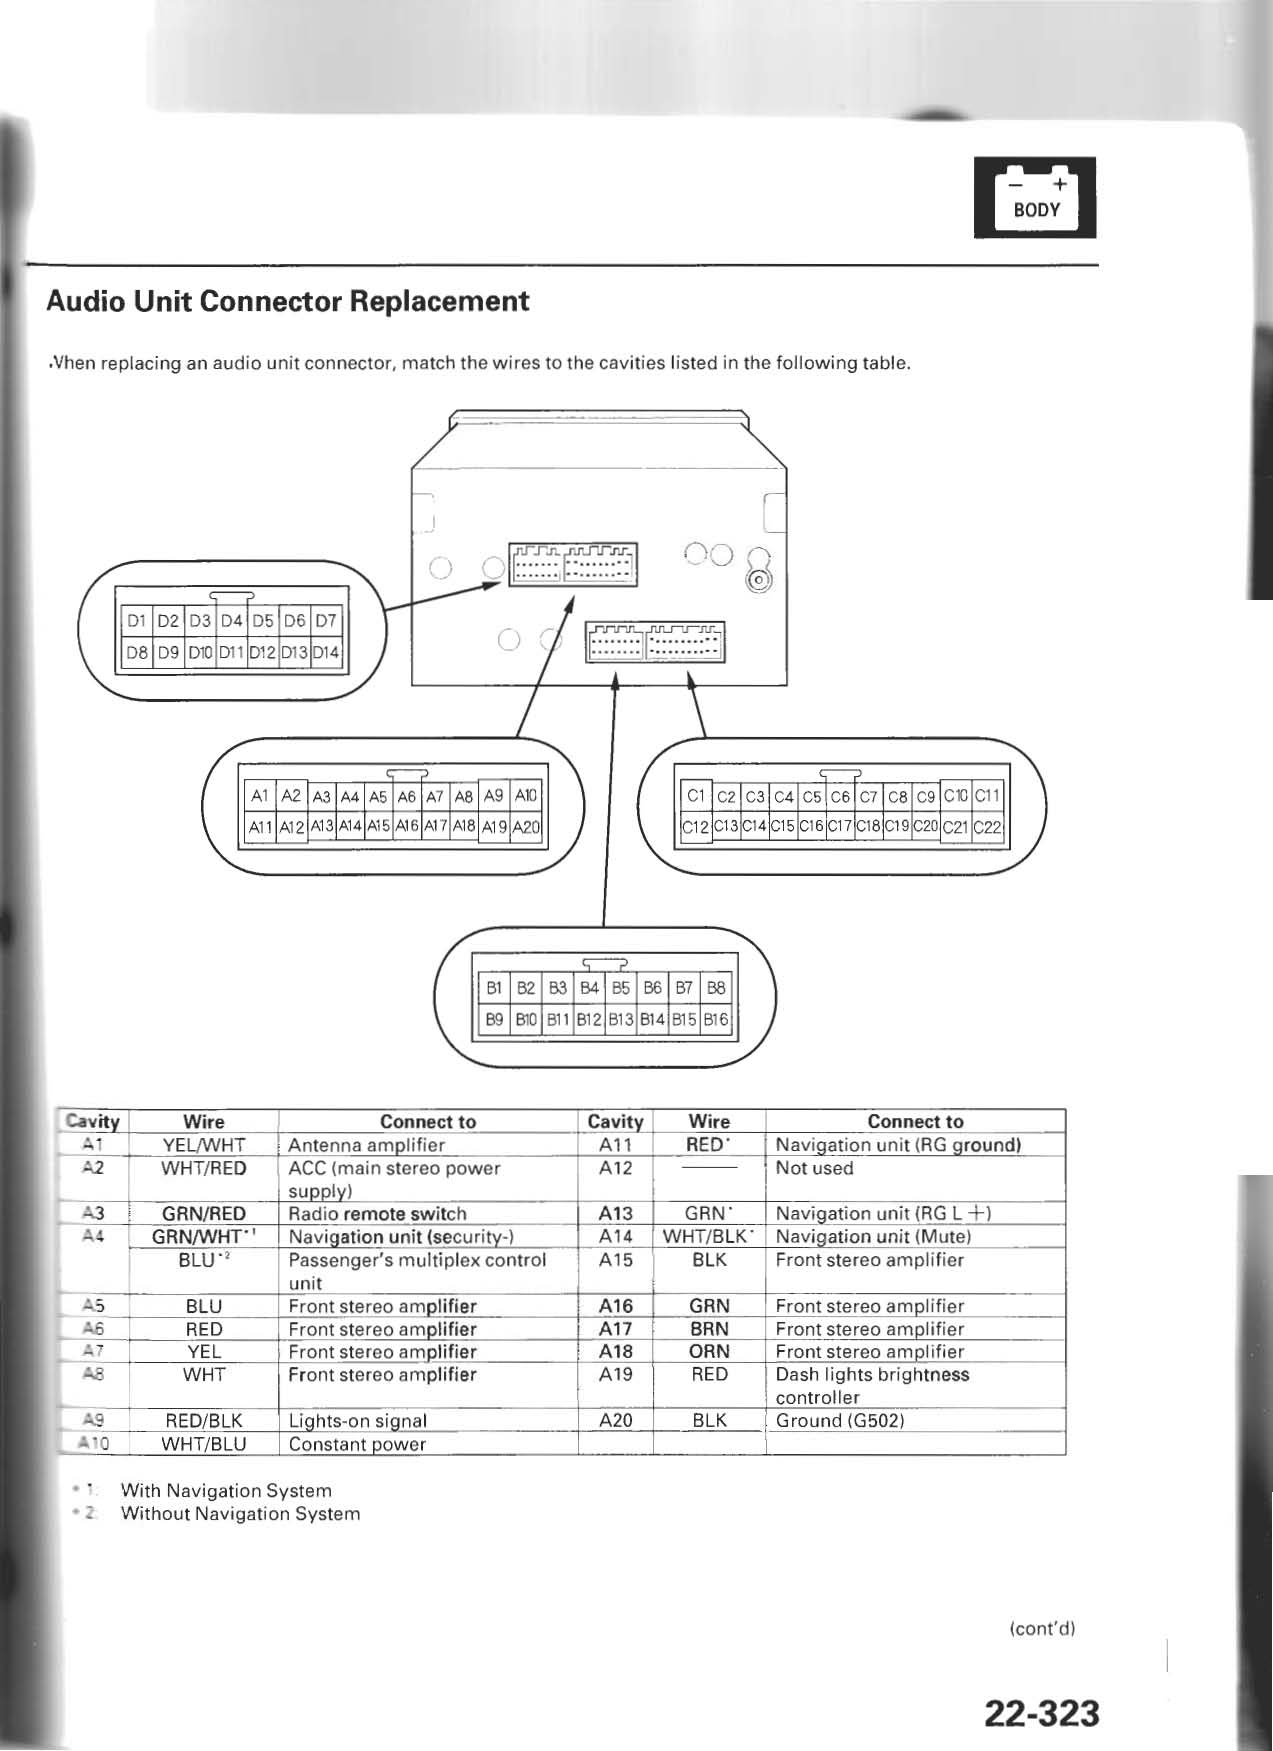 30384d1111169775 retrofit 01 04 mdx w bluetooth outs 2003 mdx radio retrofit 01 04 mdx w bluetooth page 2 acura mdx forum acura 2005 acura tl amp wiring diagram at eliteediting.co